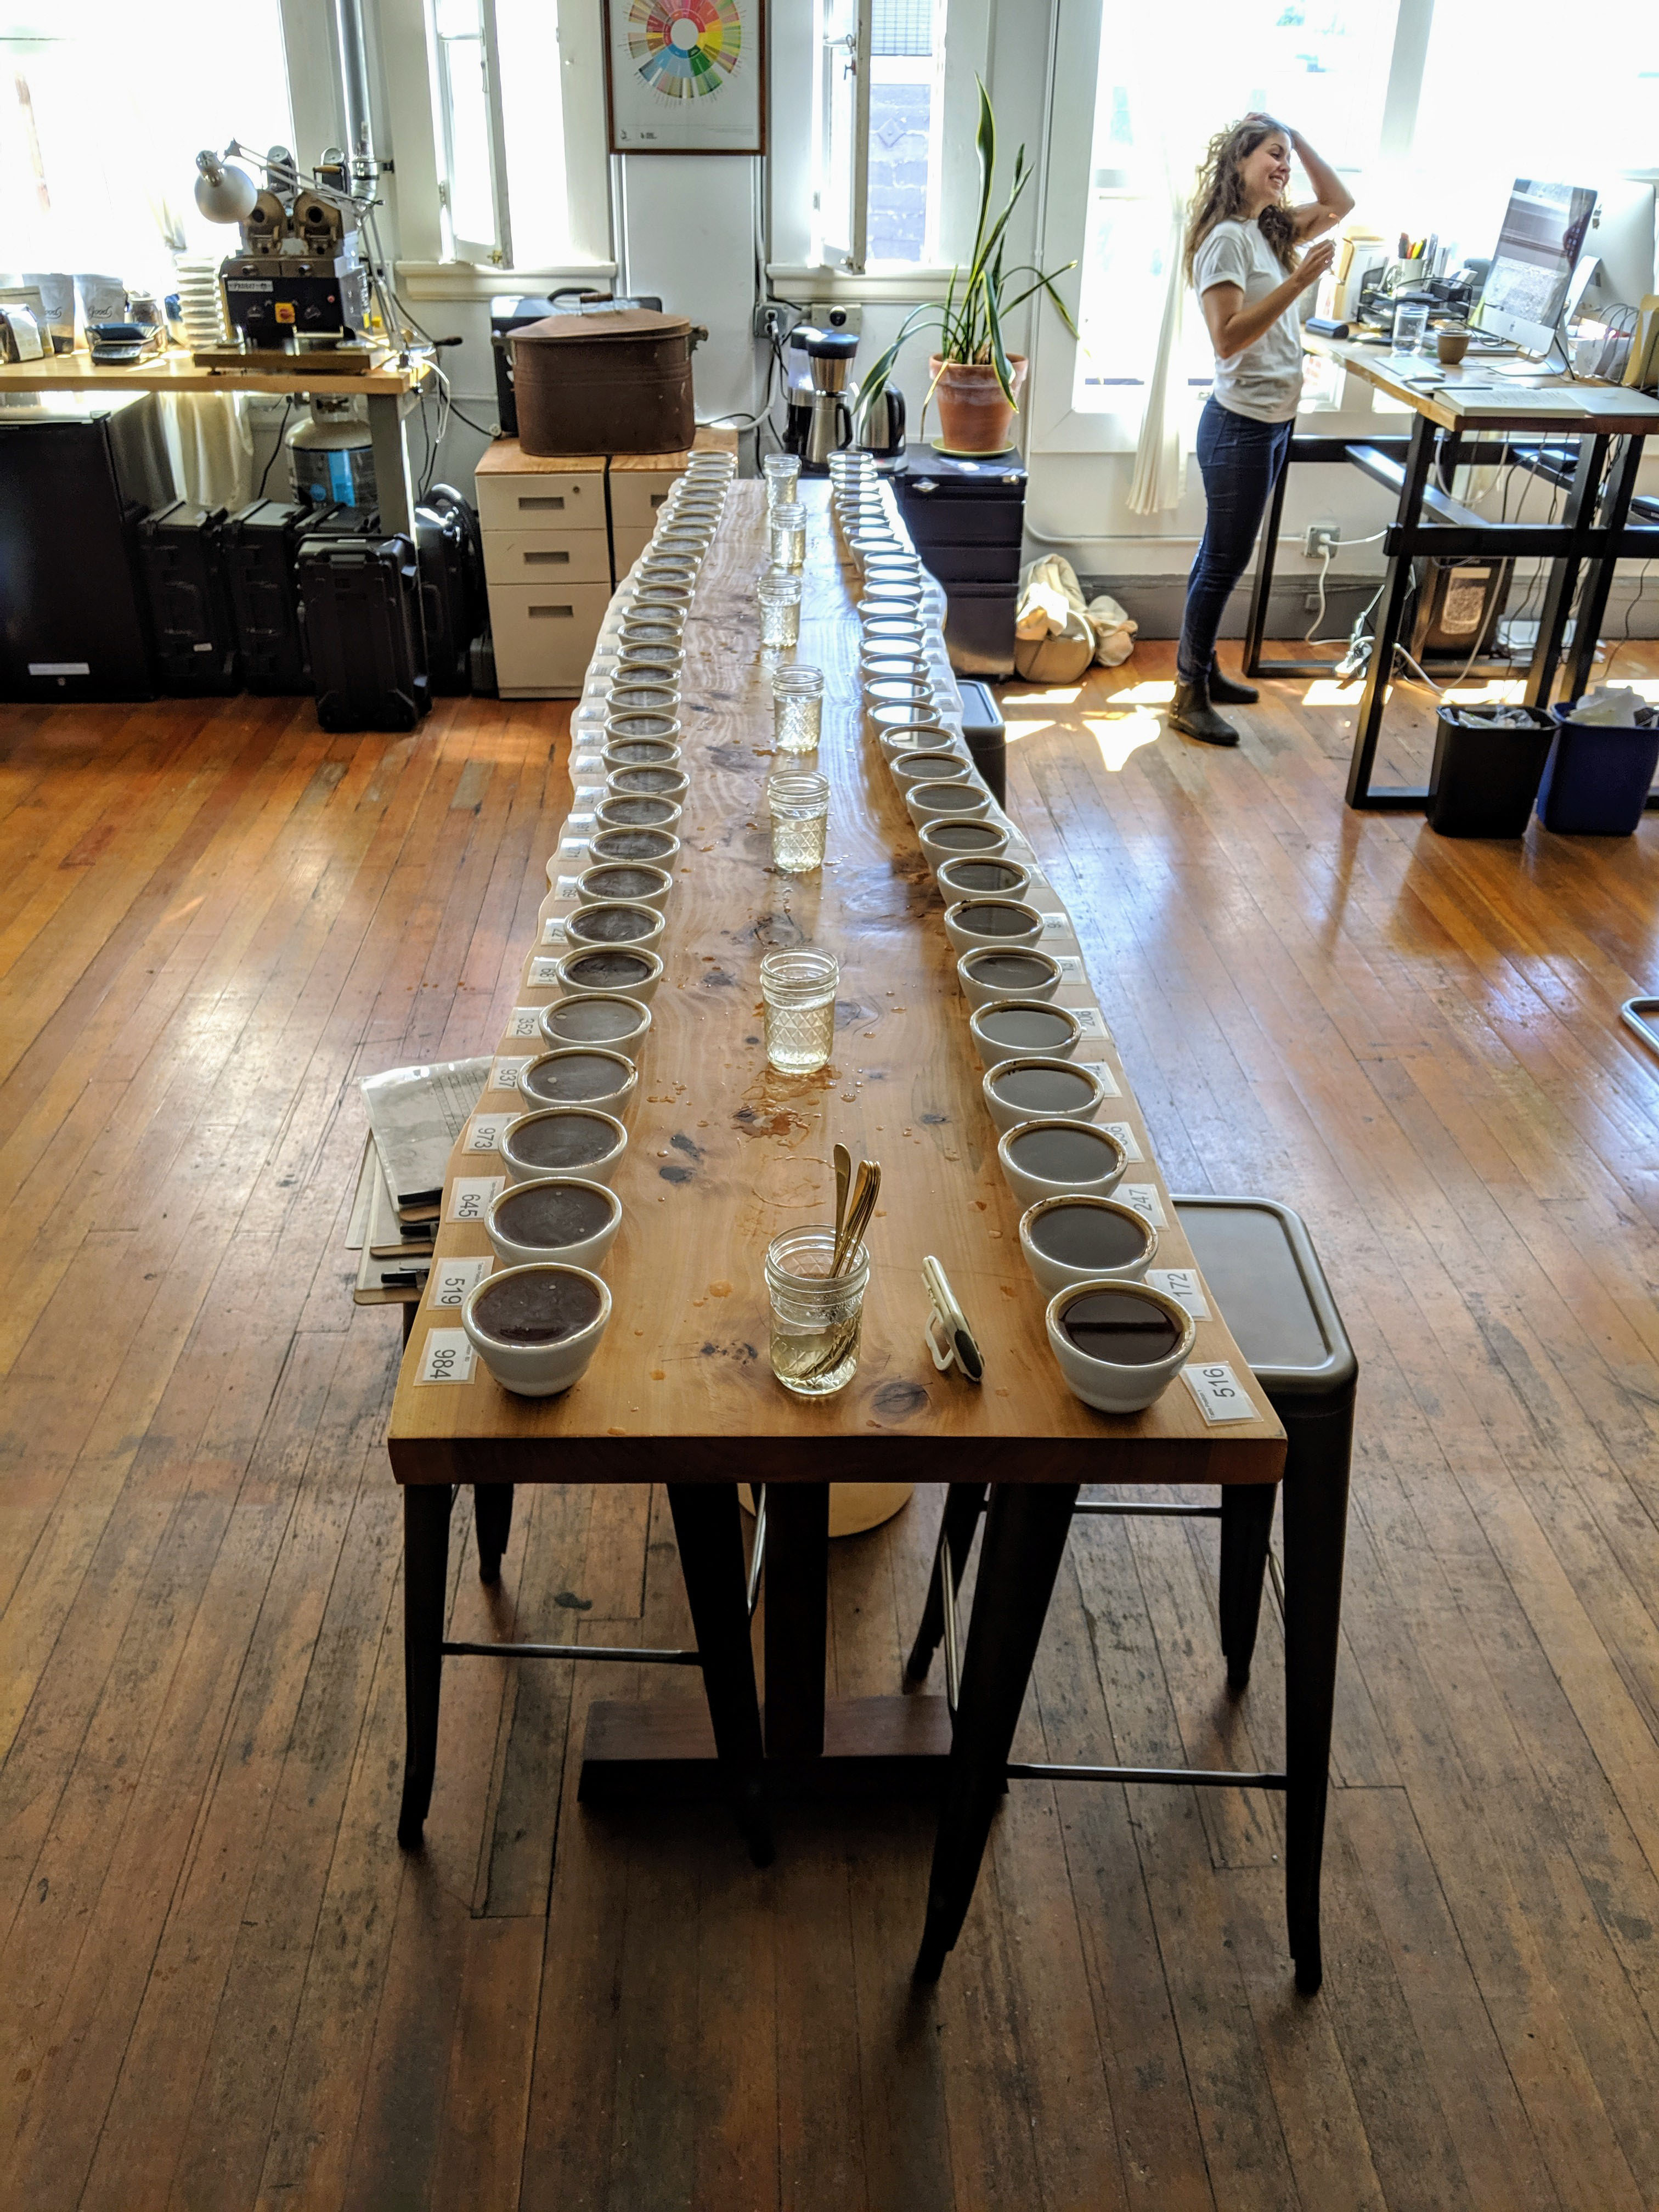 About to cup a large table in the Berkeley lab.